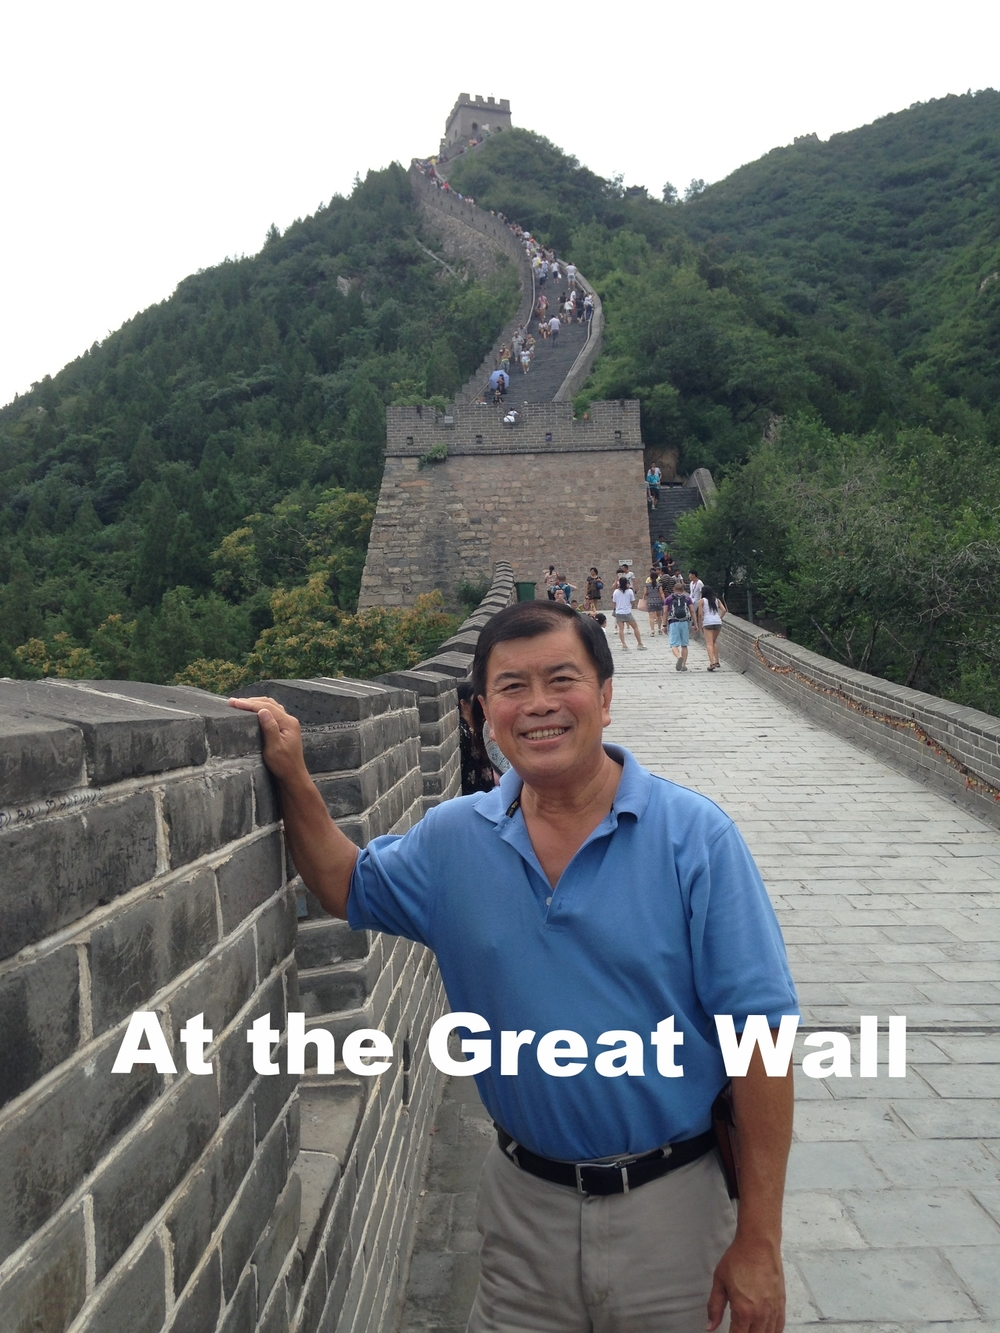 David Wu at the Great Wall